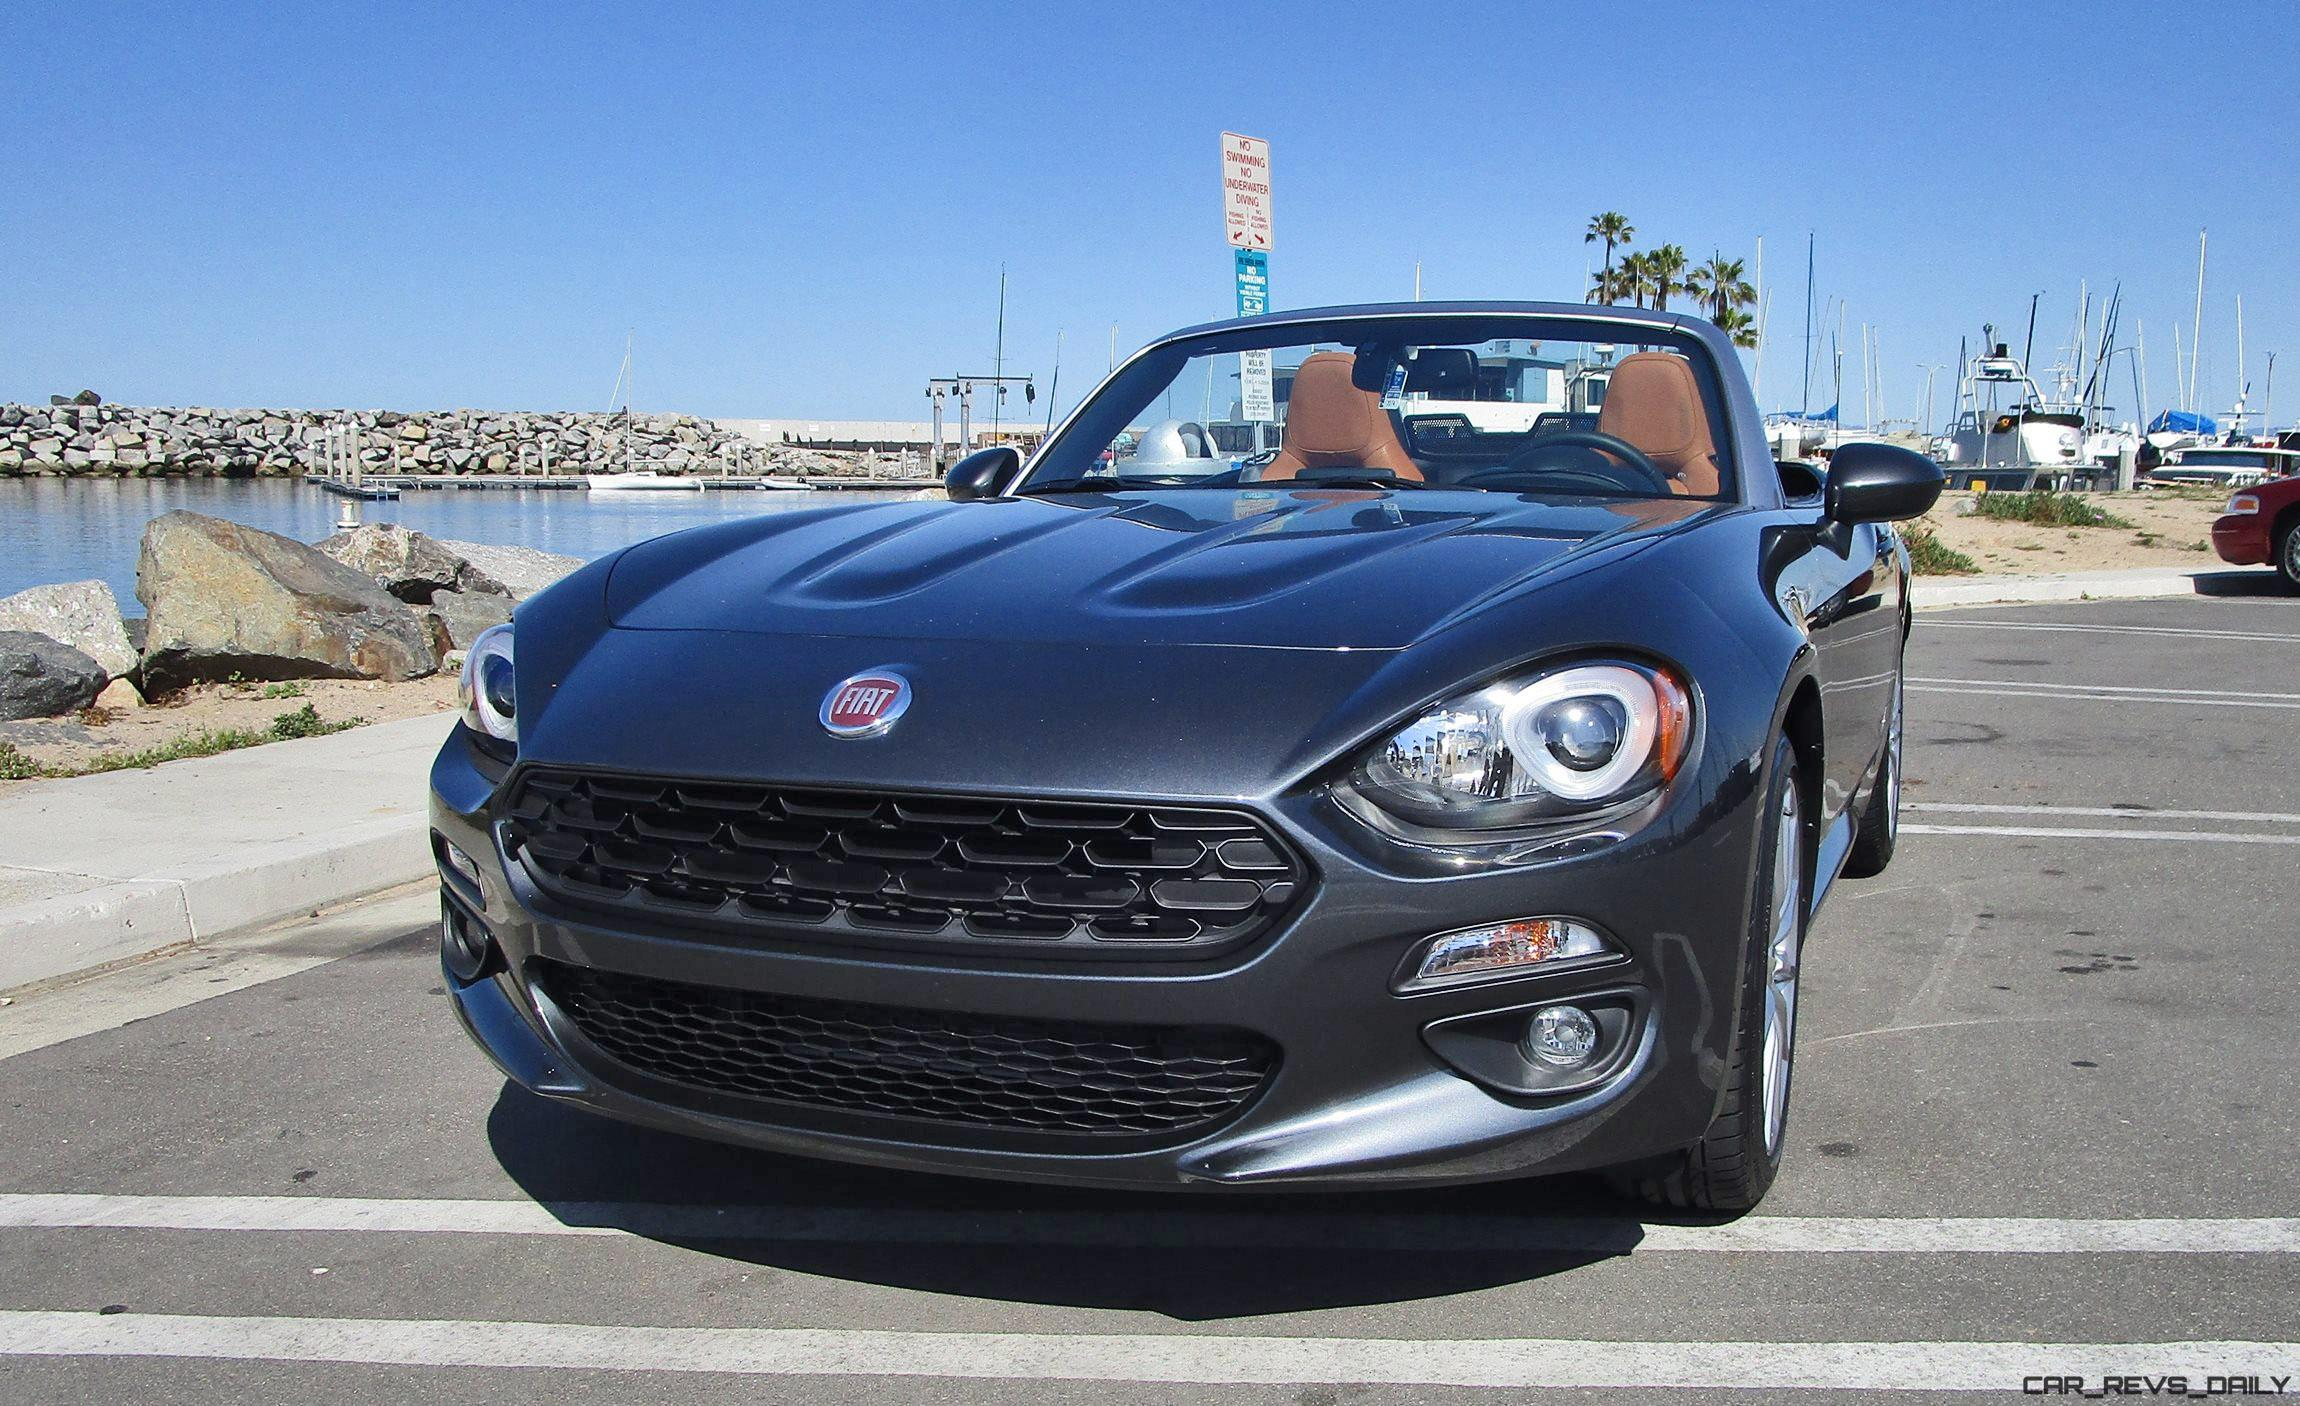 2017 fiat 124 spider road test review by ben lewis. Black Bedroom Furniture Sets. Home Design Ideas